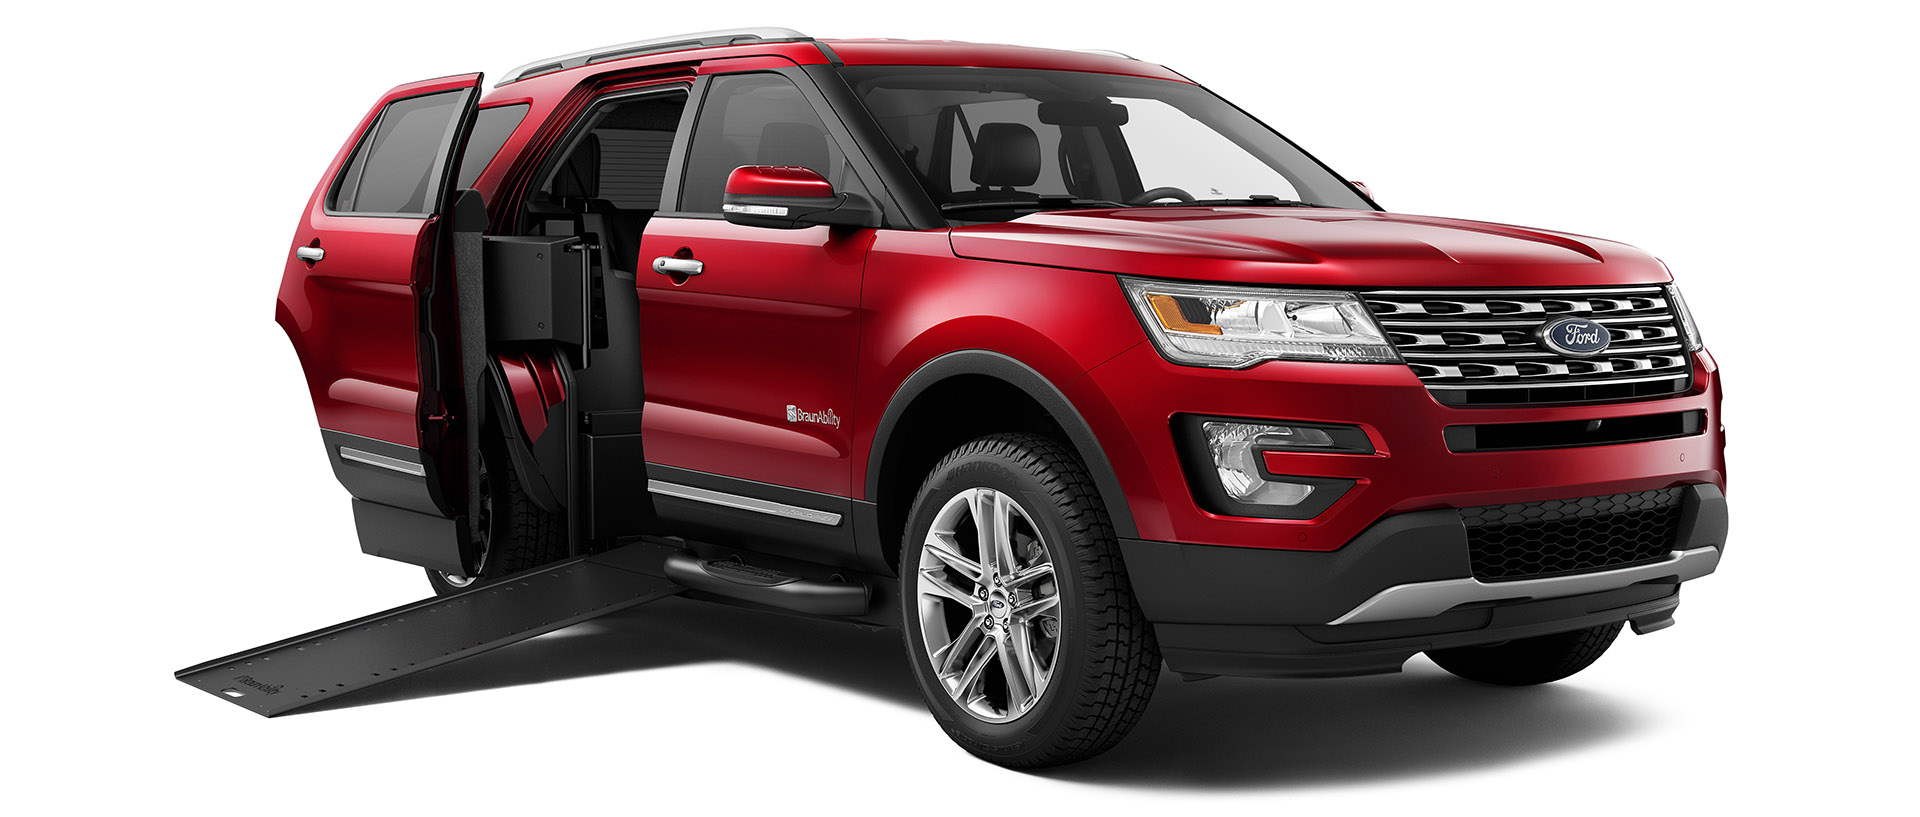 Wheelchair accessible ford explorer consumer reports for Handicap wheelchair